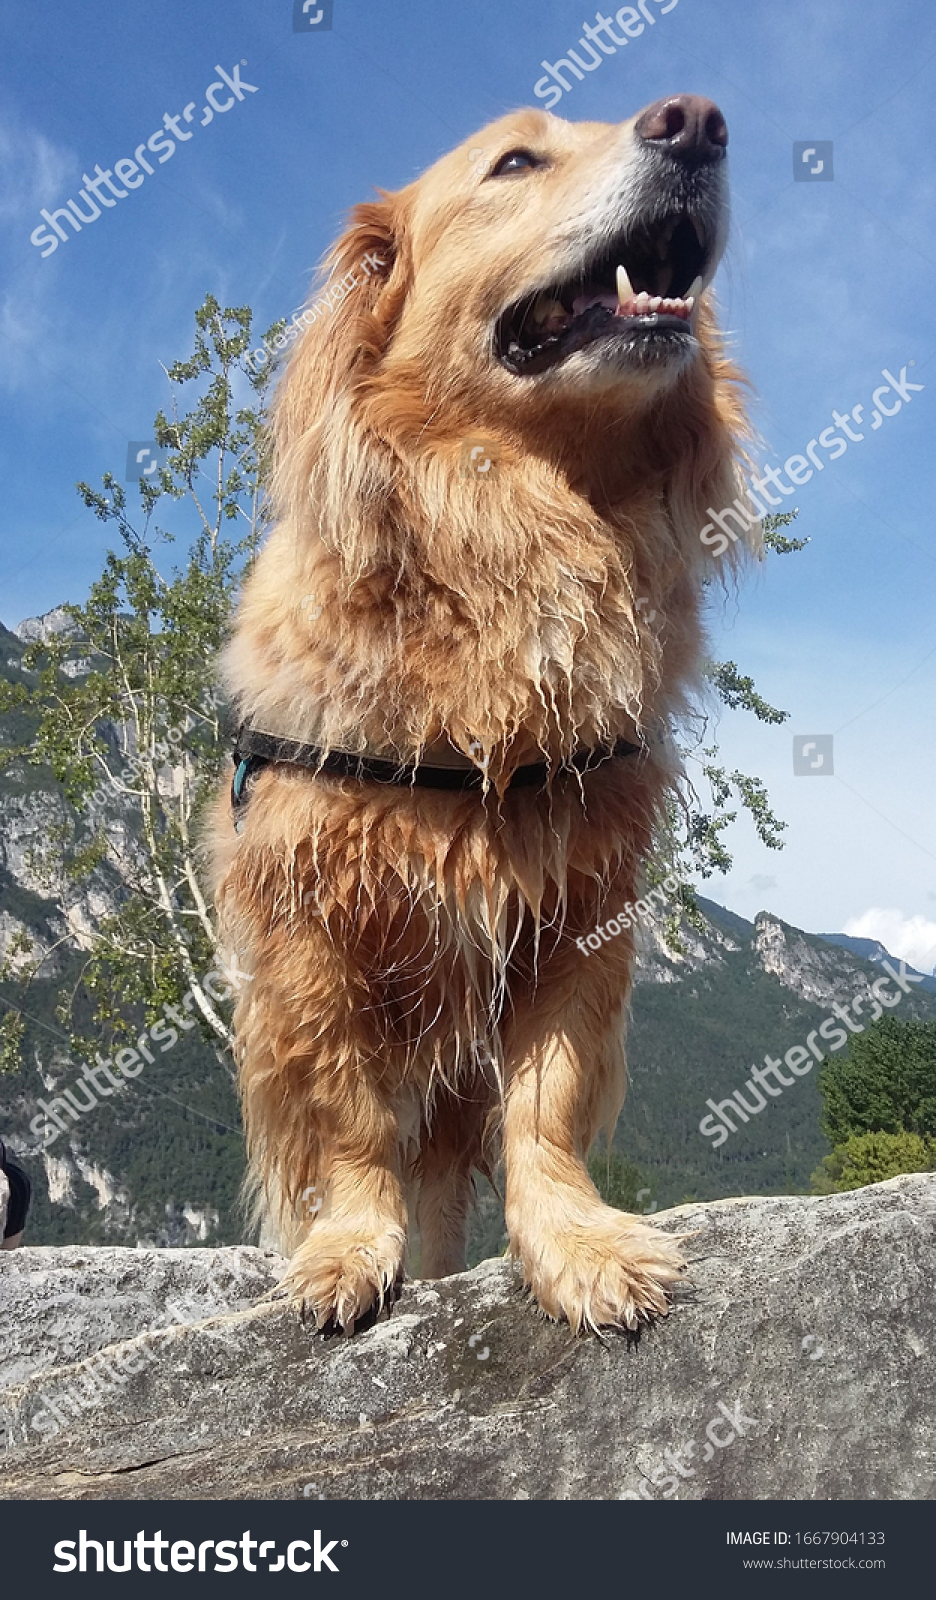 stock-photo-dog-golden-retriever-photographed-from-a-slightly-different-perspective-1667904133.jpg